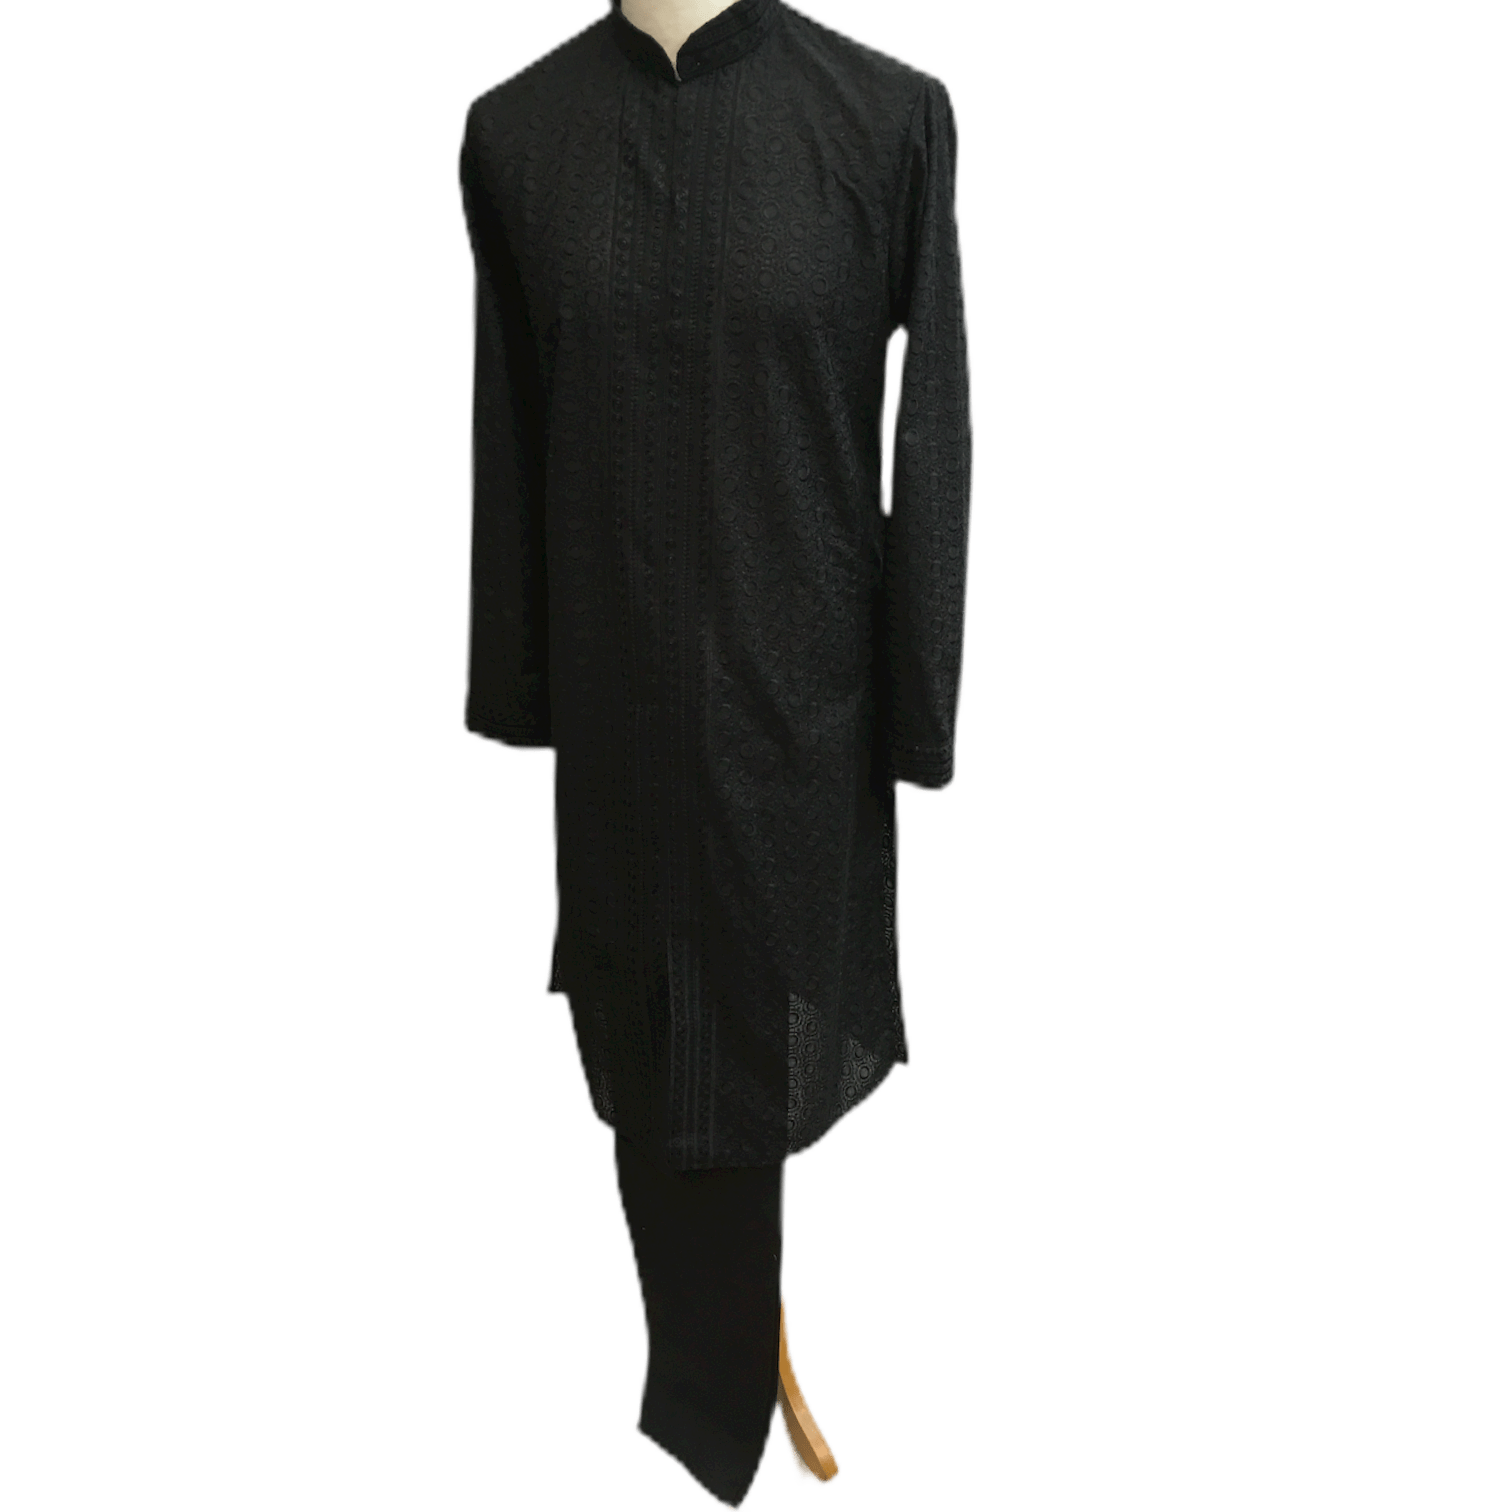 Mens Indian Kurta set in Black, for weddings, Bollywood Party ( with Draw stringed trousers) - Fellow KR1219 - Prachy Creations